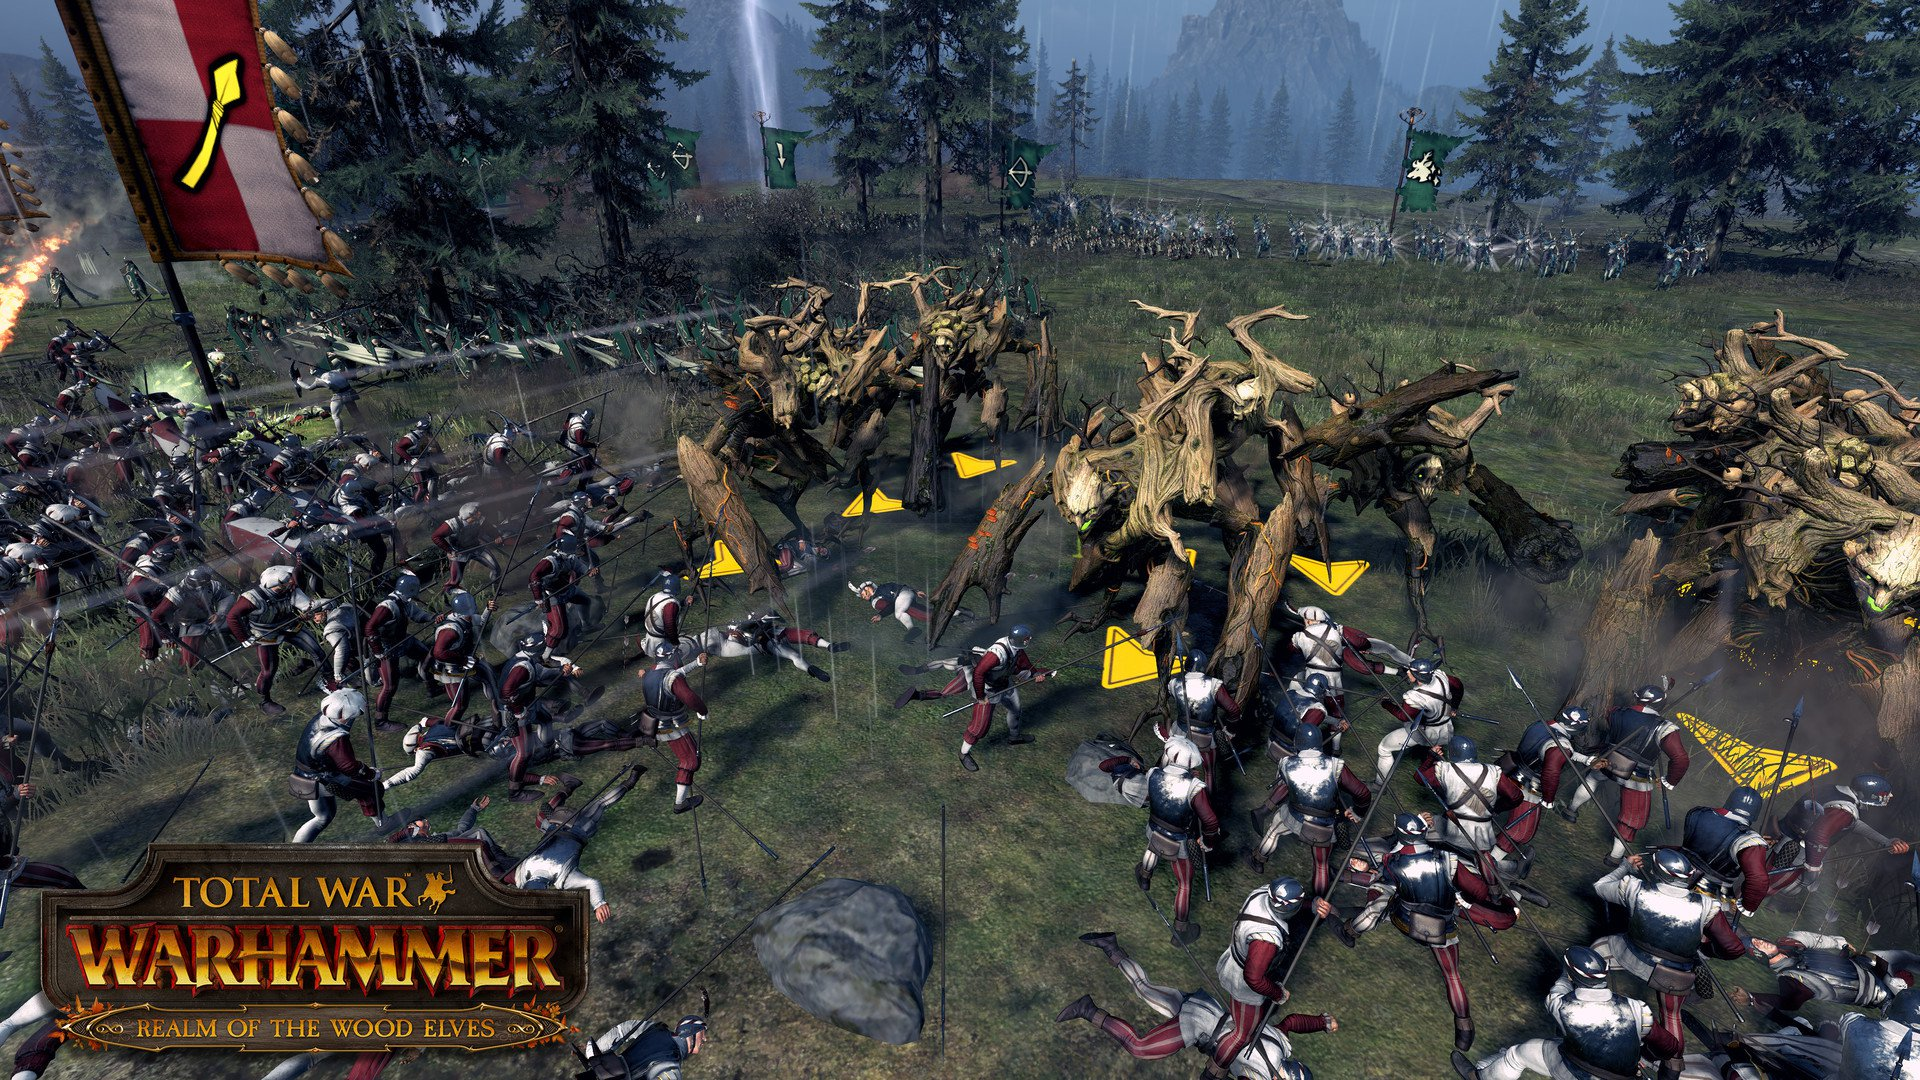 Total War WARHAMMER Realm of The Wood Elves 8